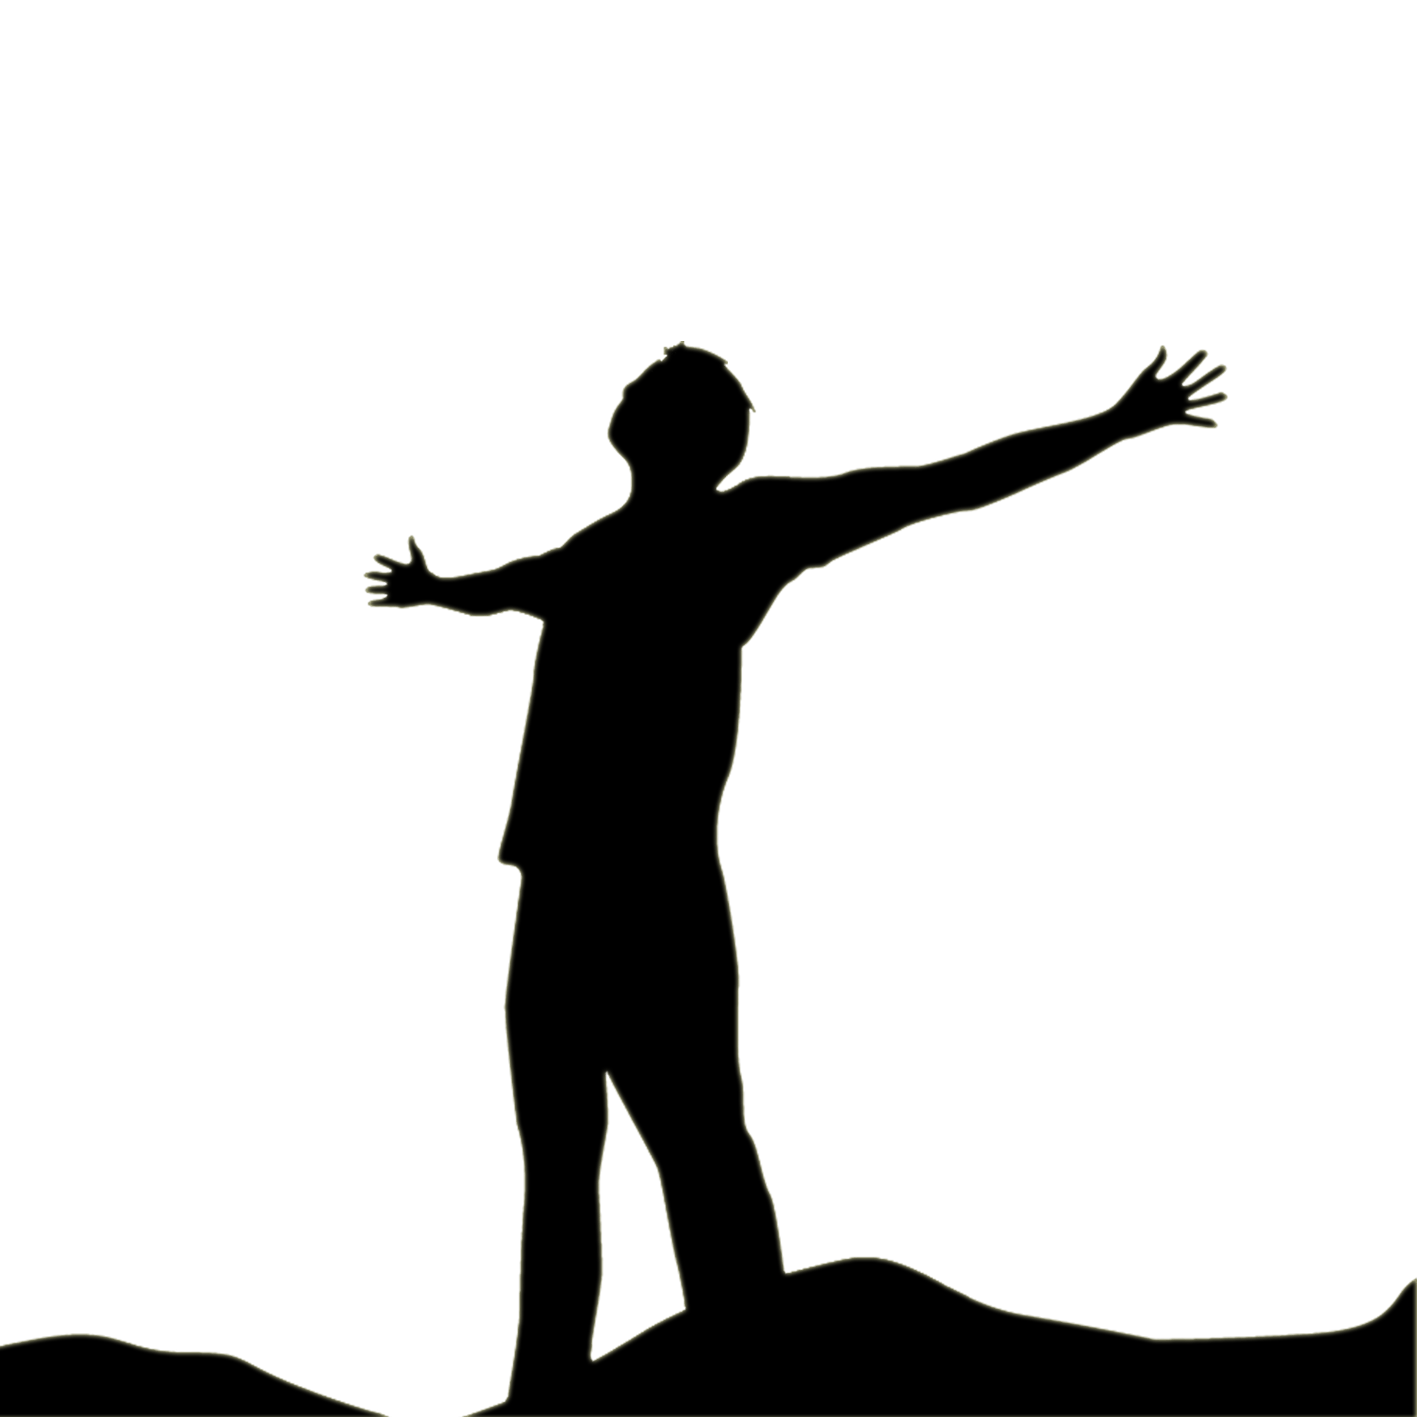 Free Praise Clipart Black And White, Download Free Clip Art.